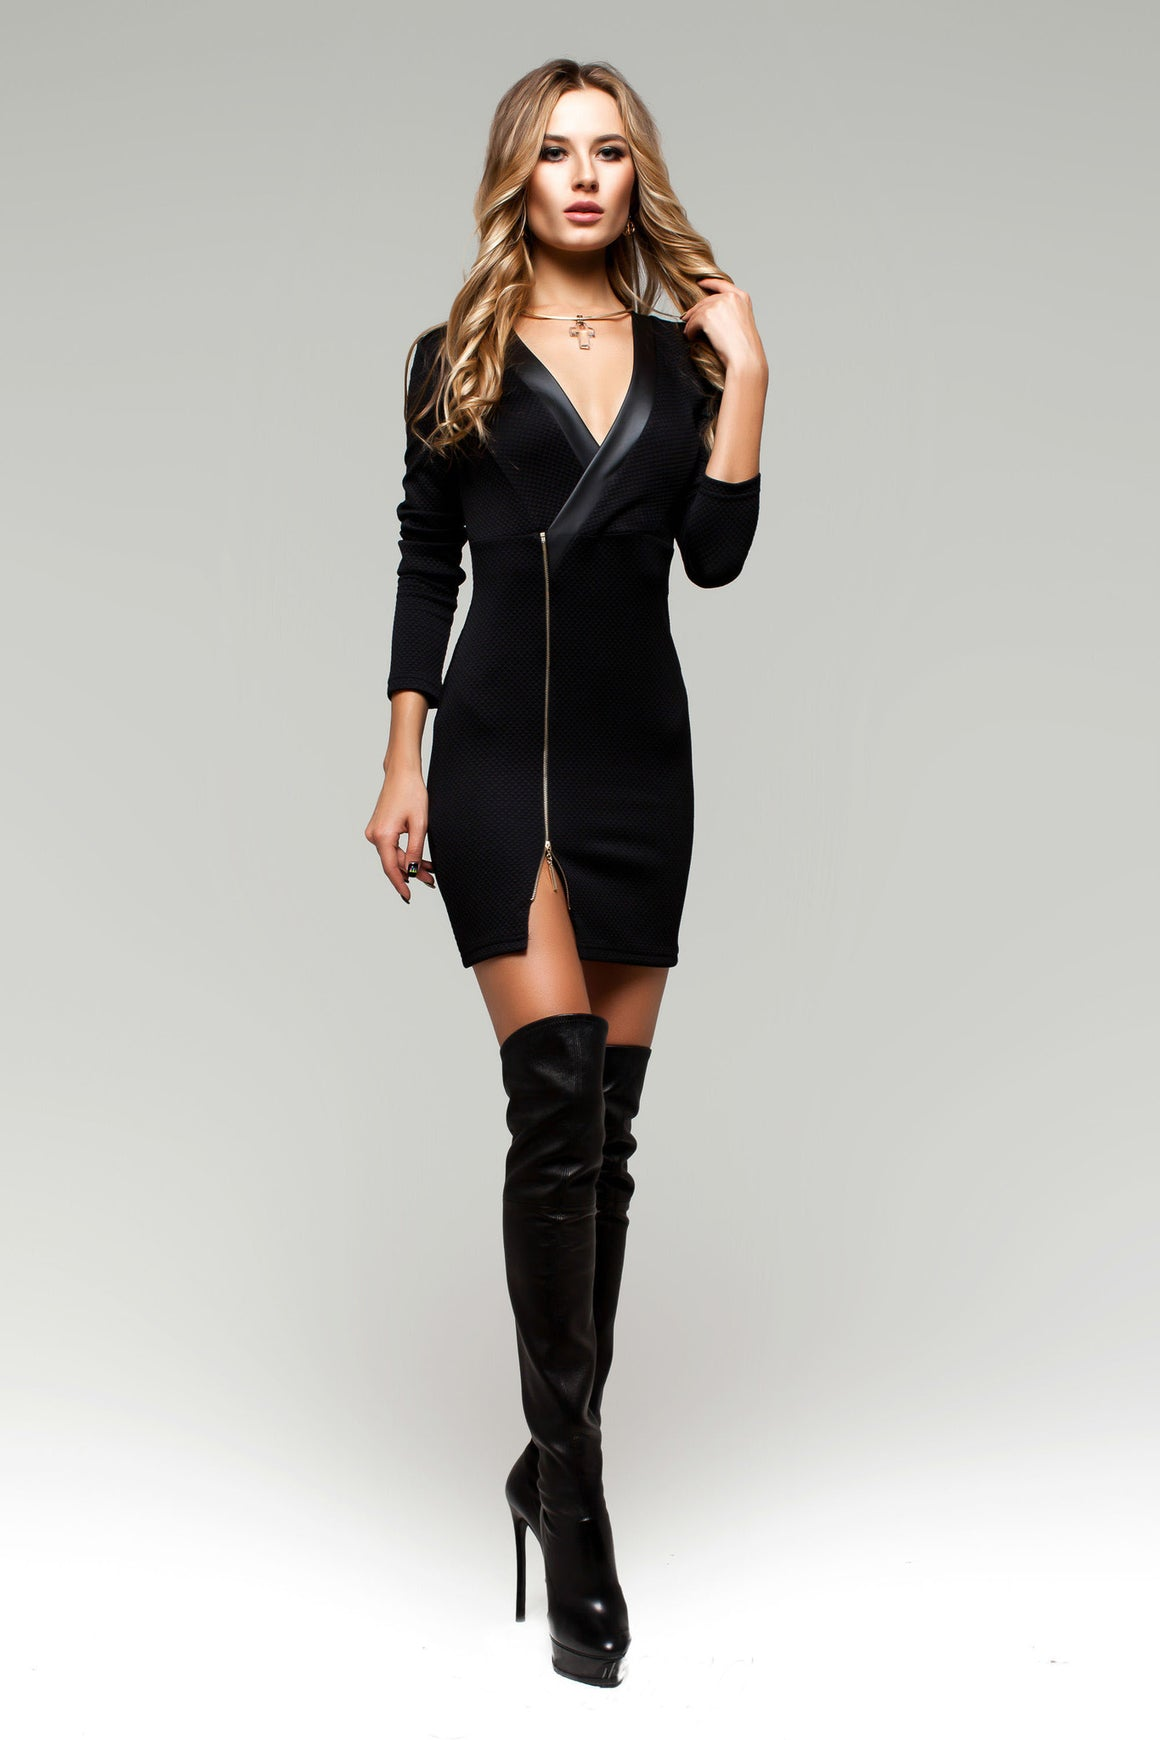 Black Bodycon Tunic Dress with Zipper Deco - Kollekcio  - 1